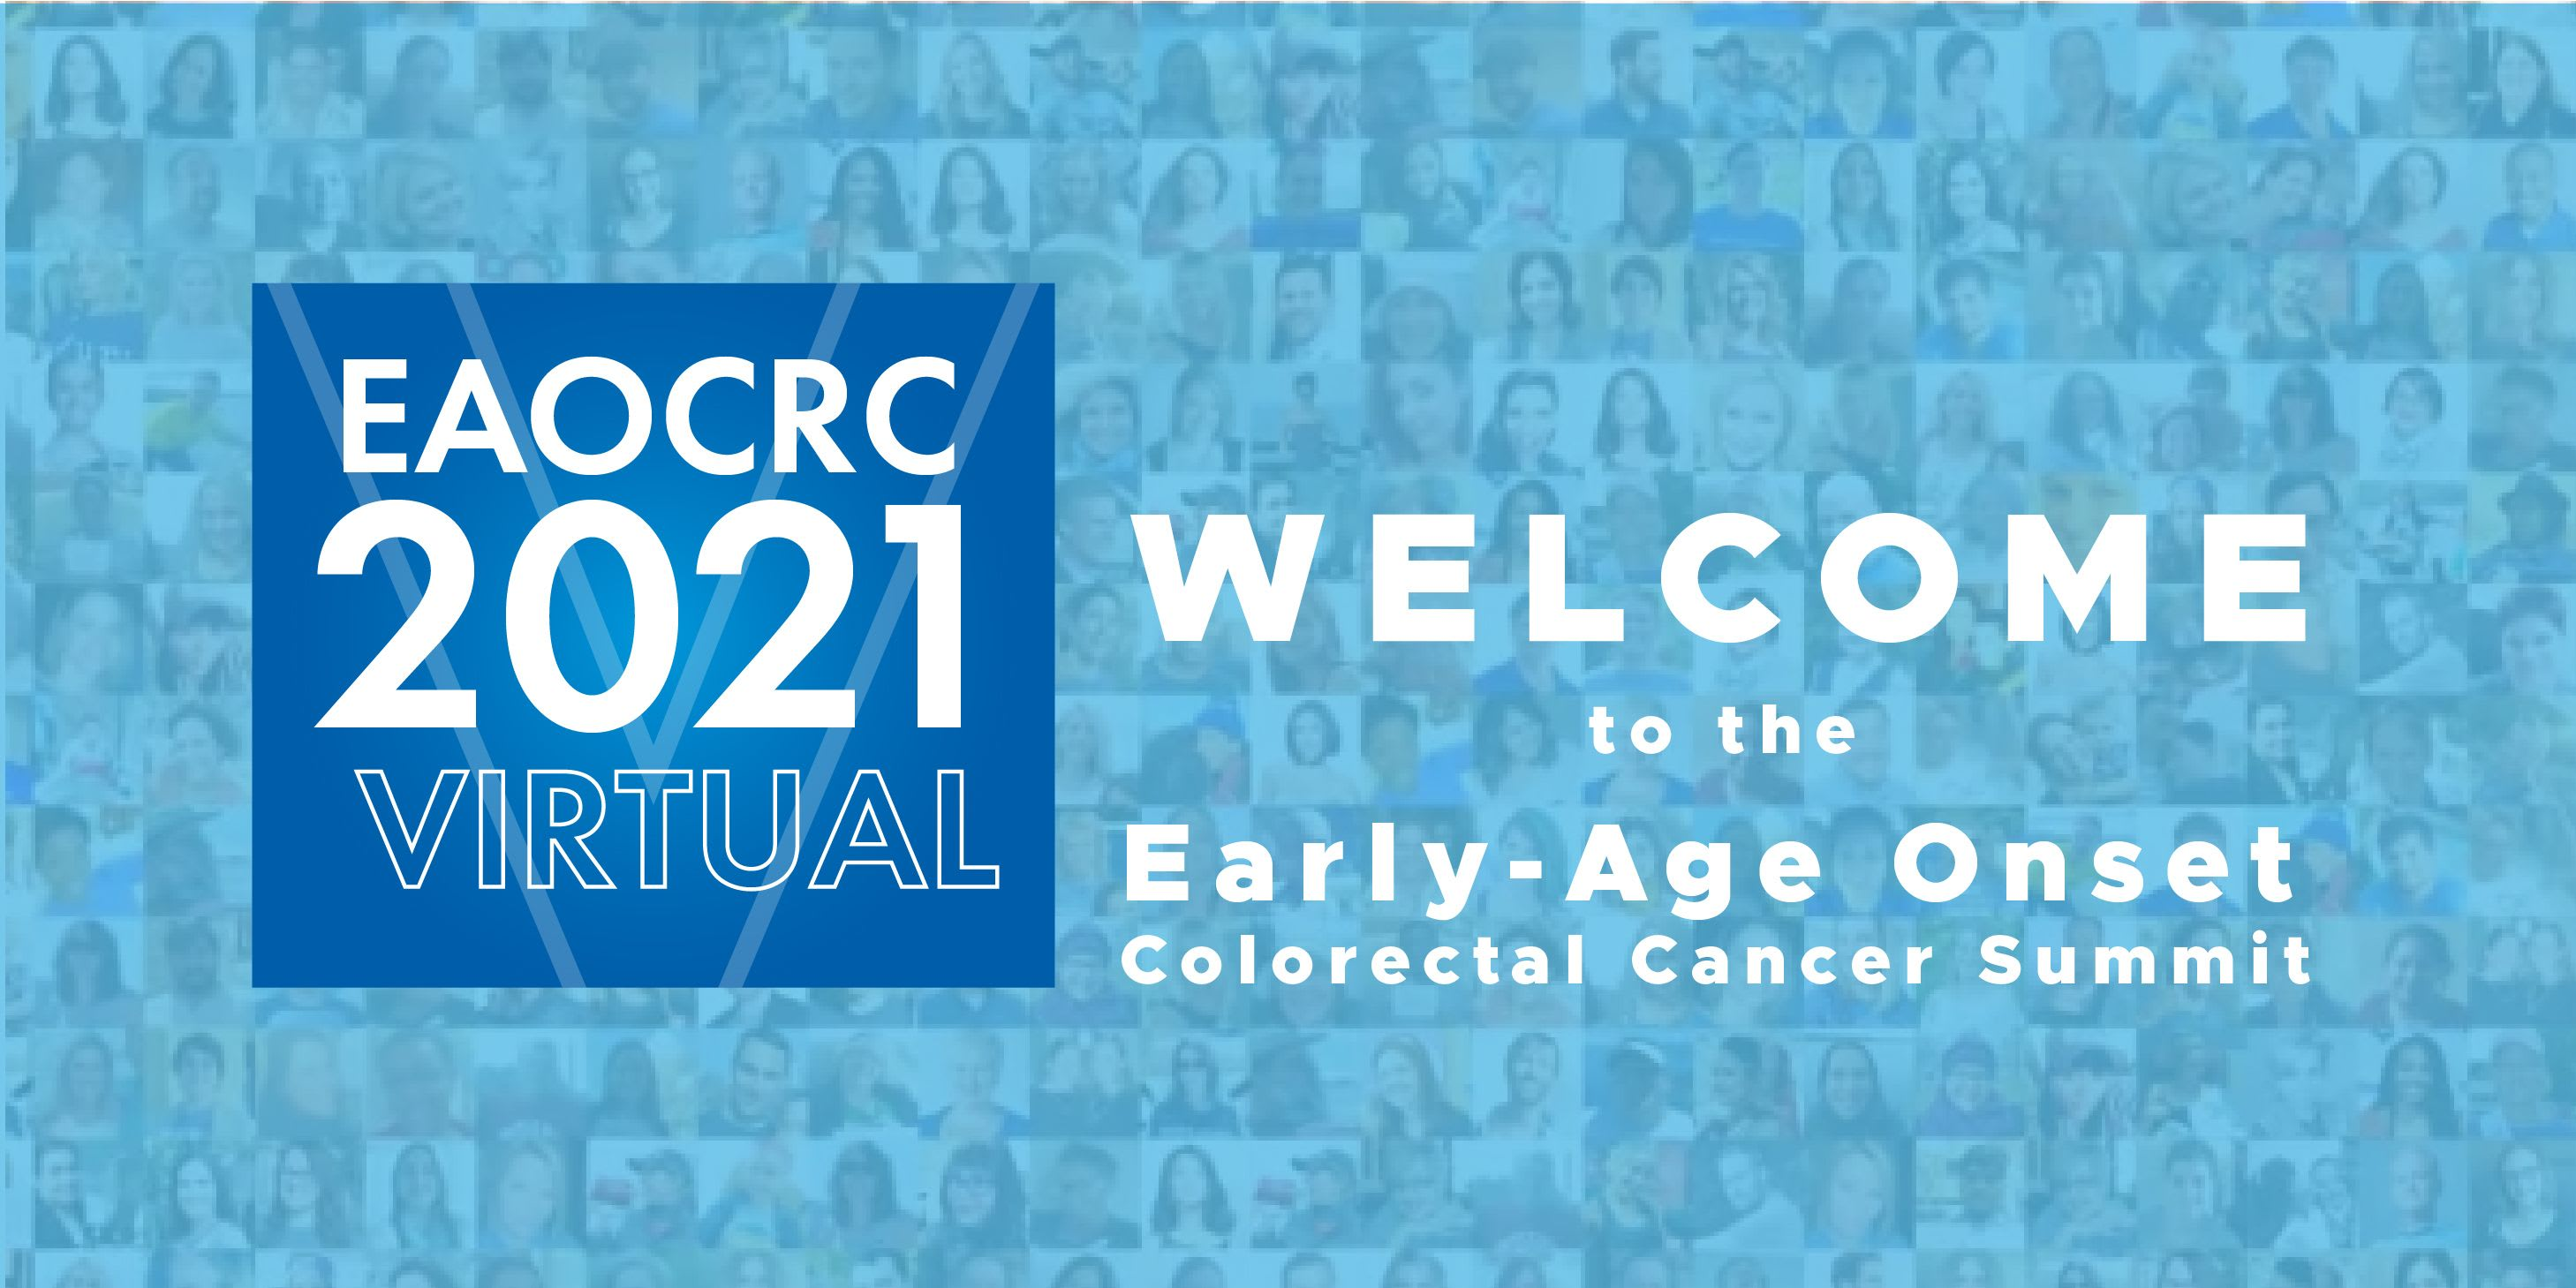 Early-Age Onset Colorectal Cancer Summit